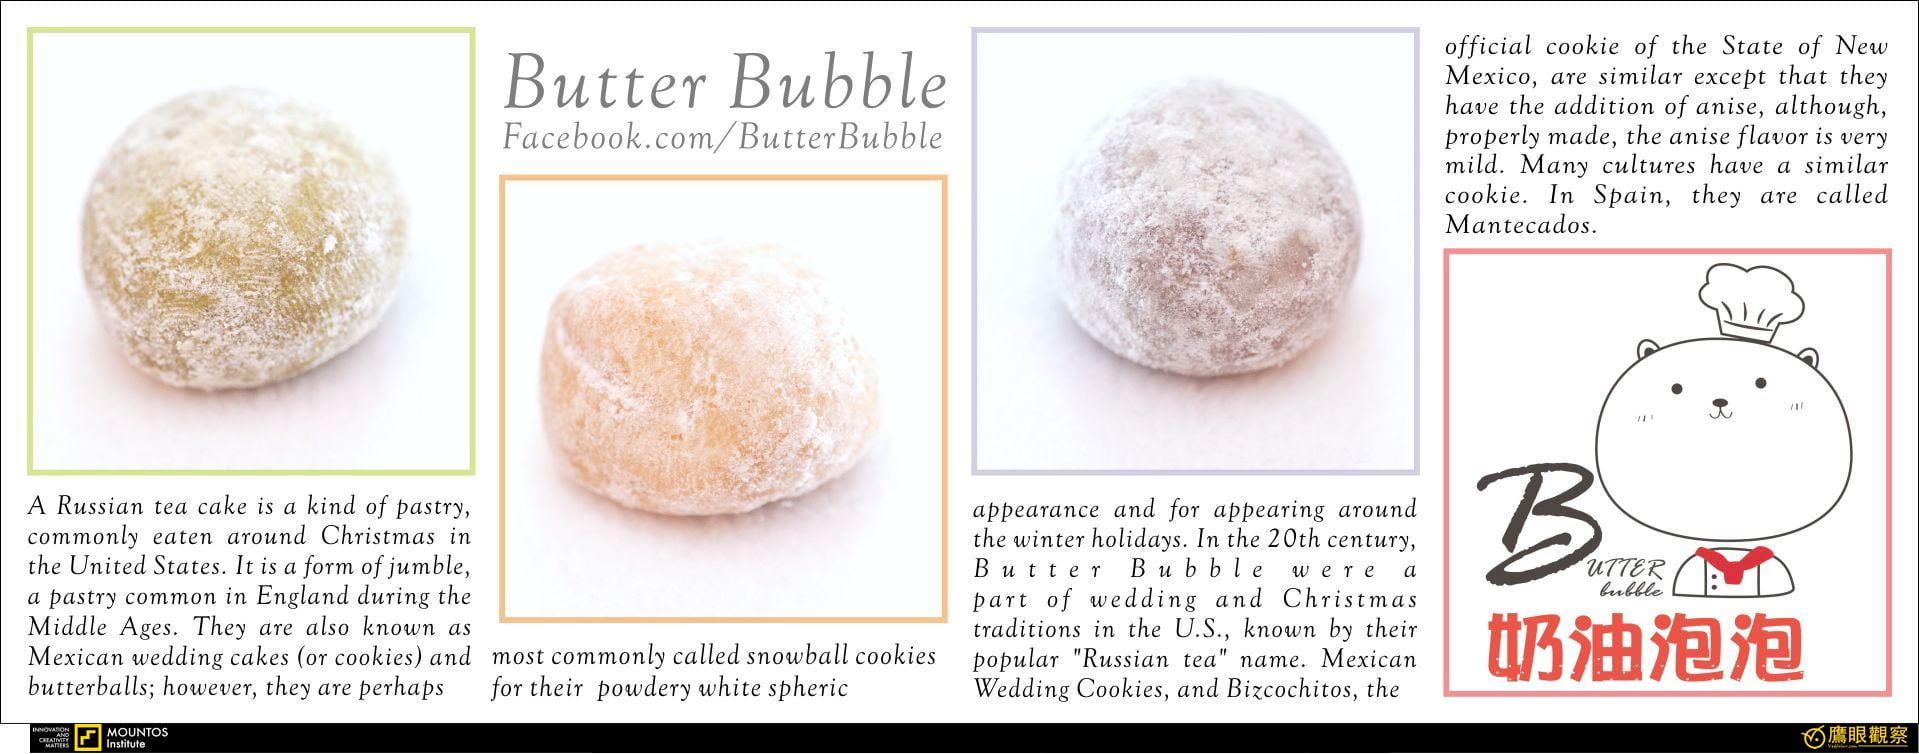 Butter Bubble Snowball Cookies Mexican Wedding Cakes Butterballs DM 試吃體驗:奶油泡泡、雪球餅乾 (Snowball Cookie) 的試吃心得與食譜作法分享